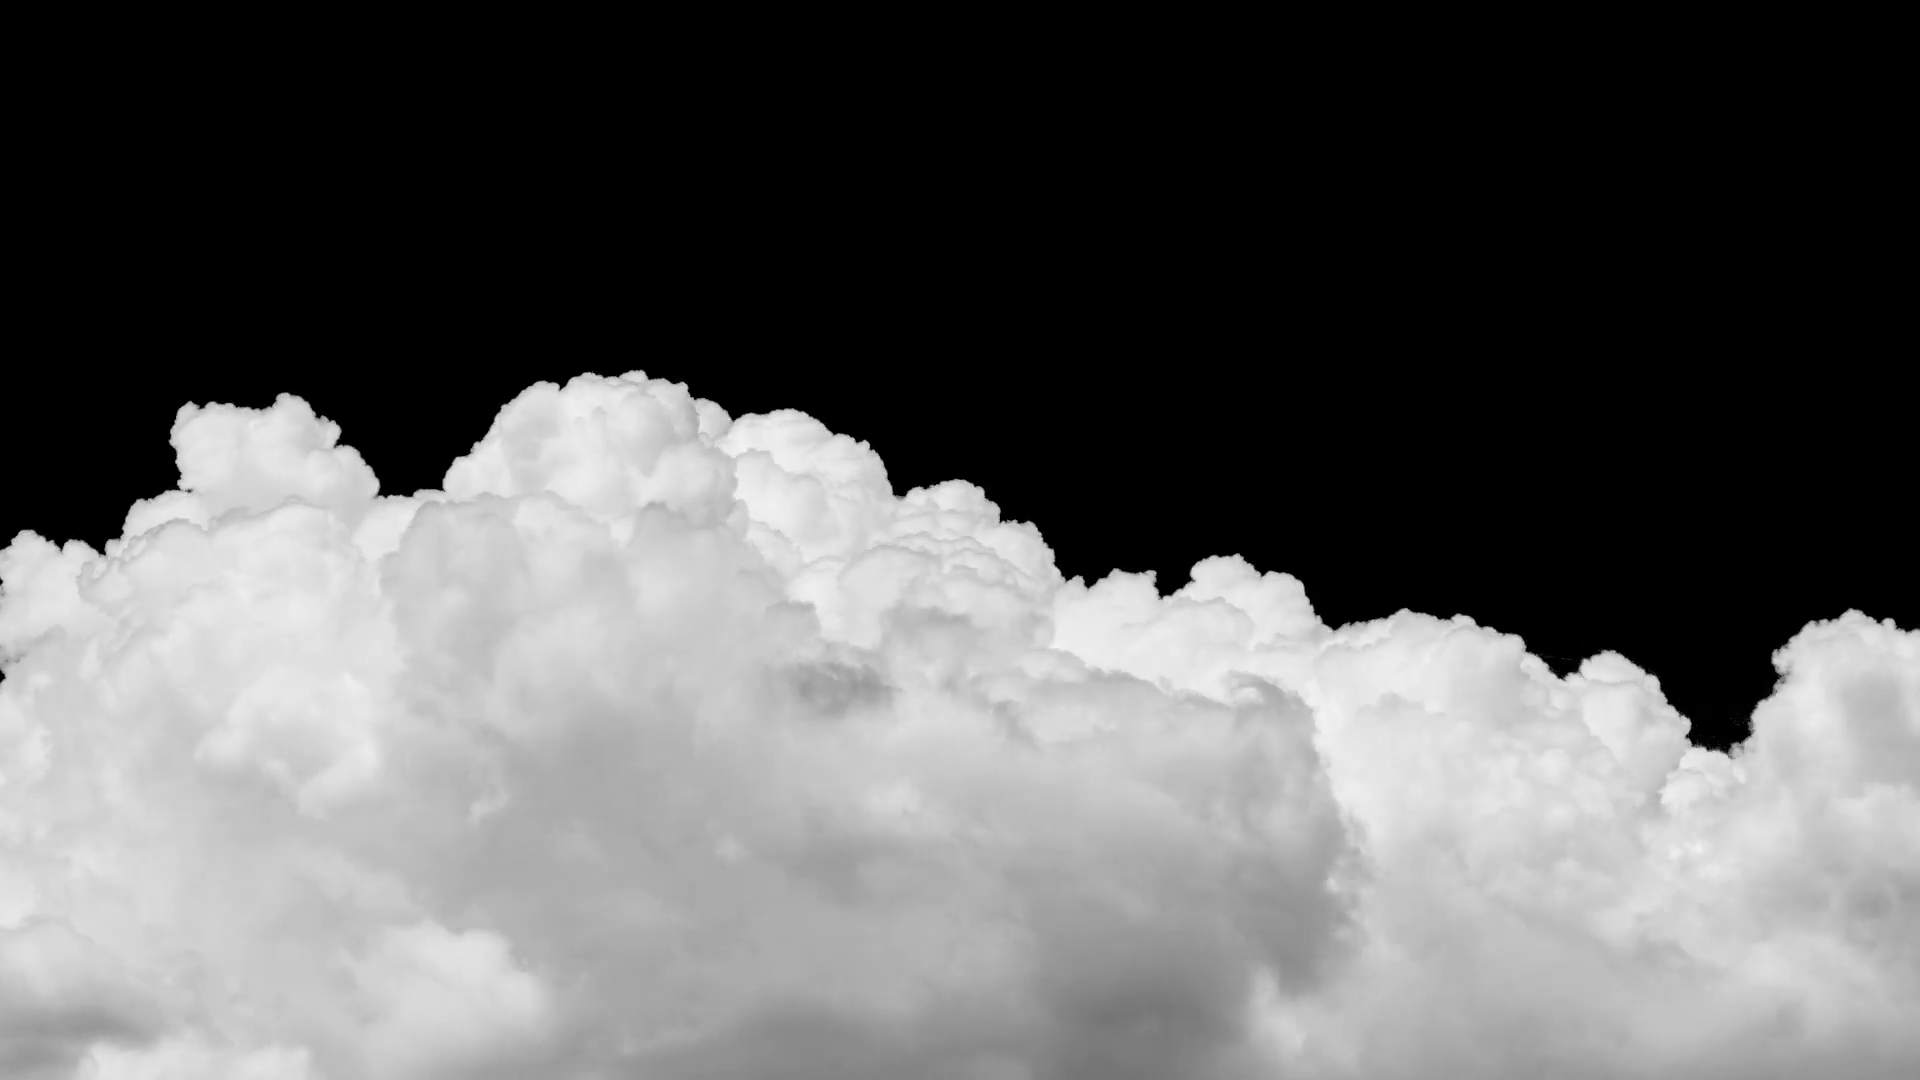 Clouds PNG HD Images - 127224